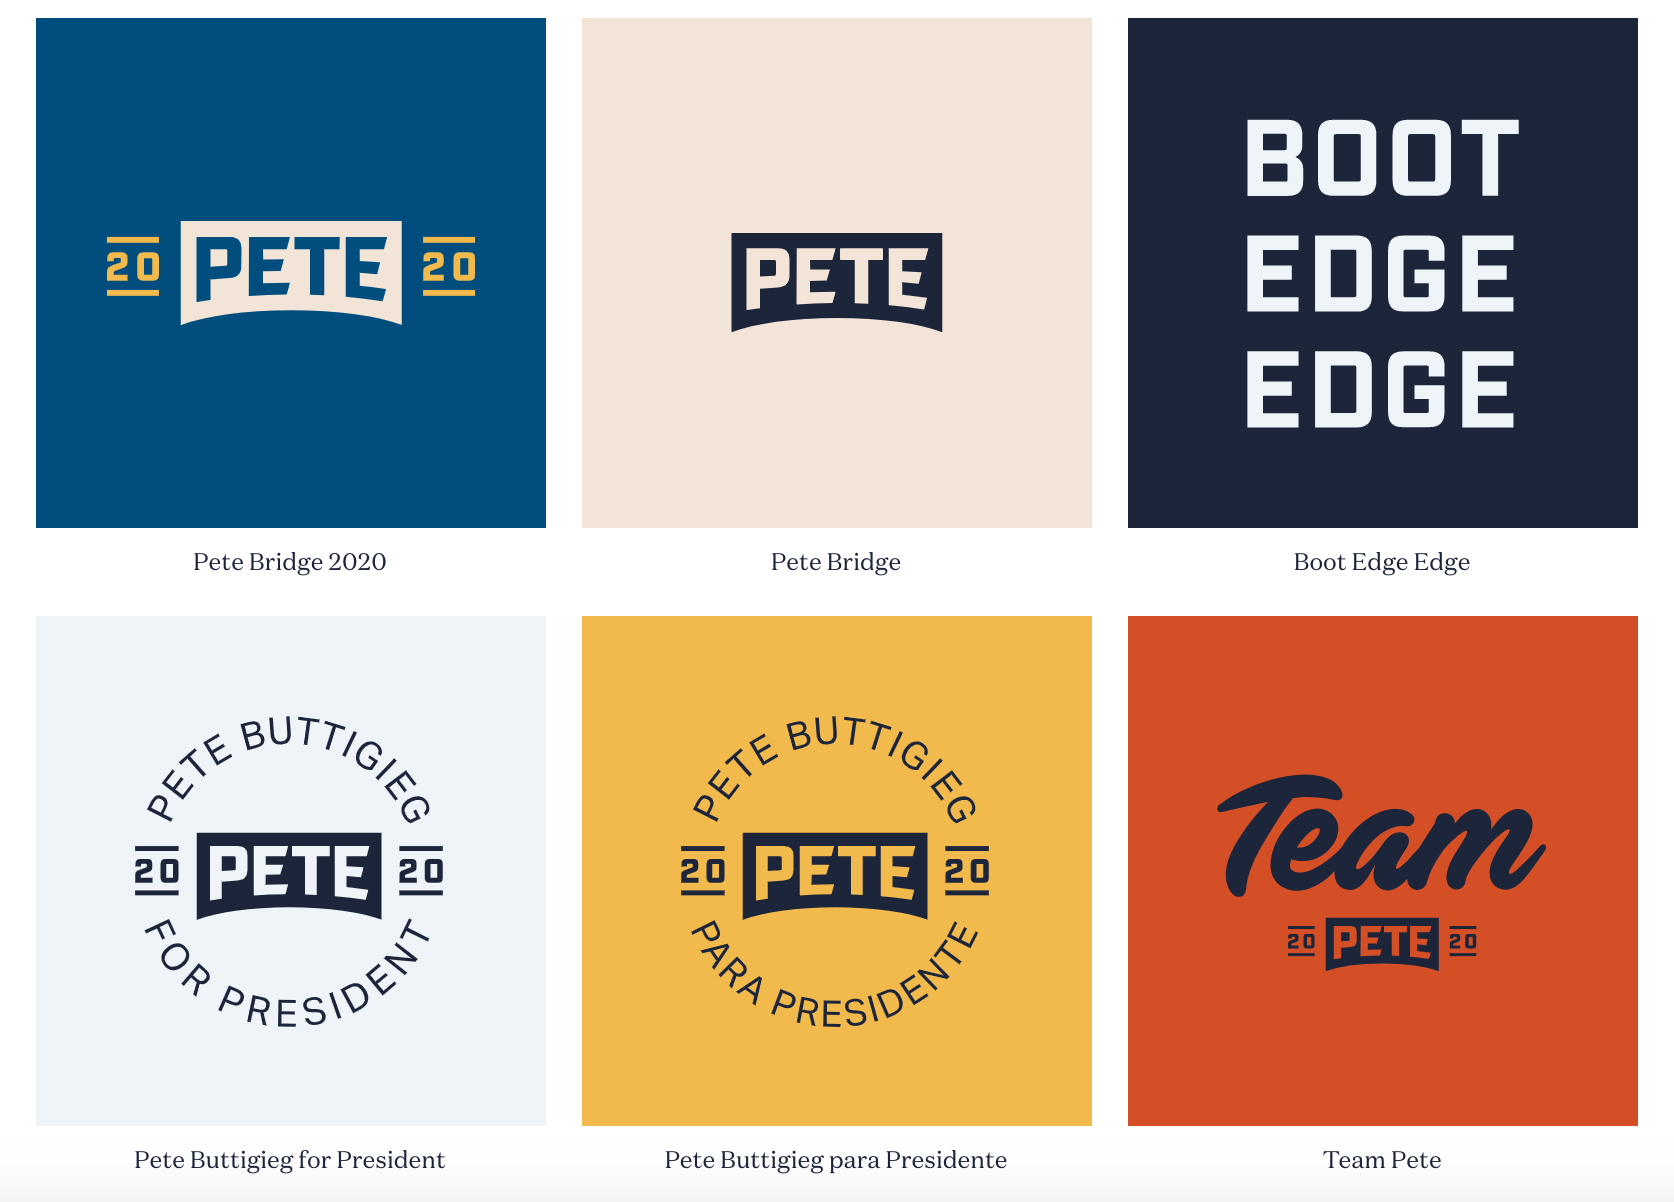 Graphic Design Trends 2020 - Muted Color Palettes 3